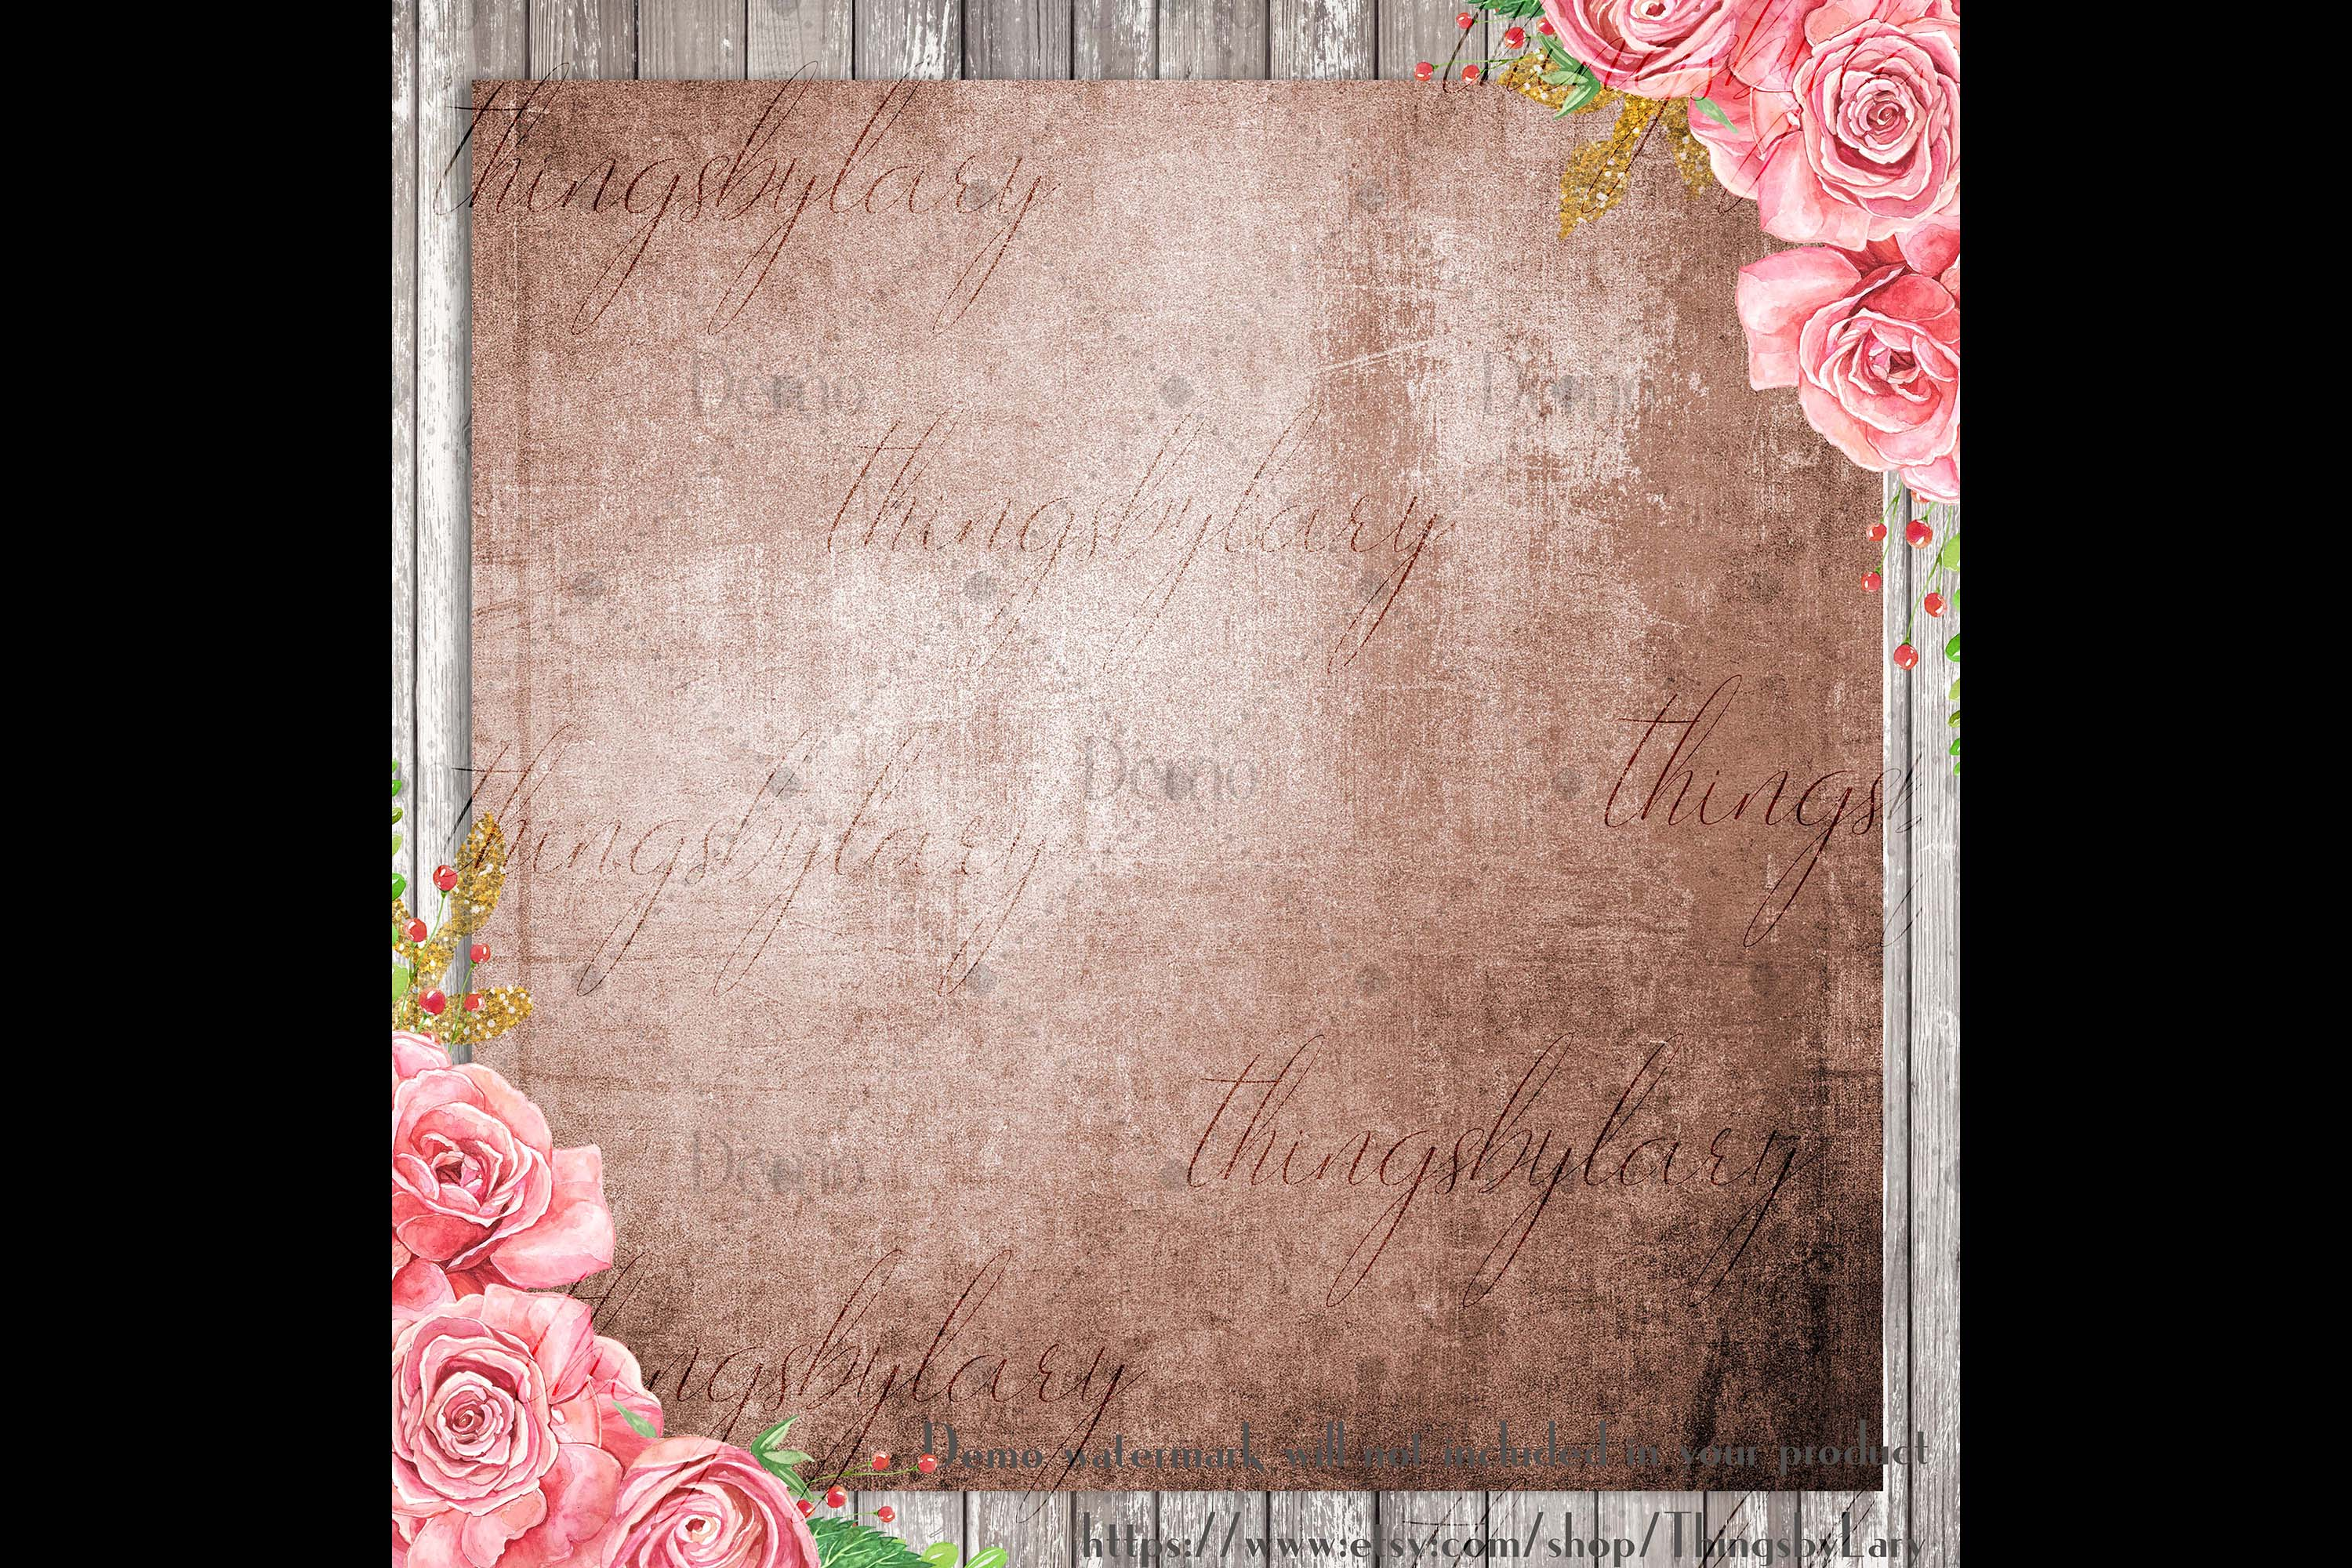 100 Real Antique Grunge Distressed Texture Digital Papers example image 3